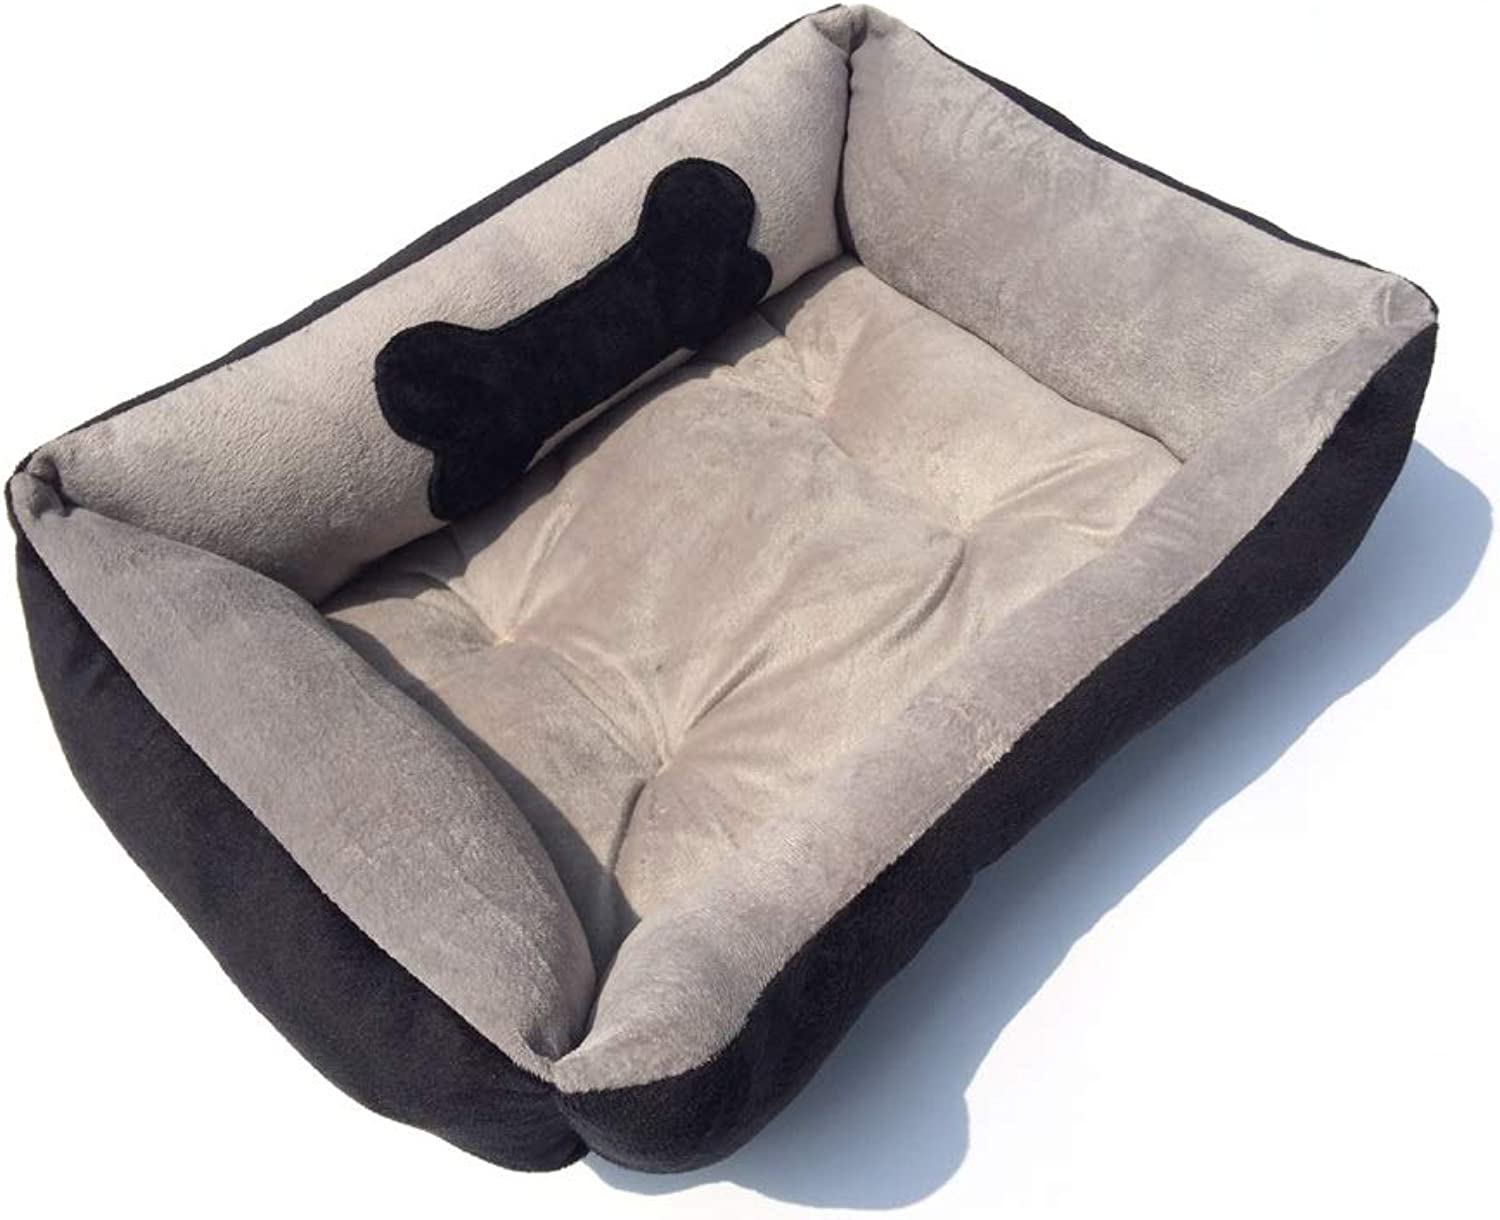 Dog Bed, Premium Short Plush Pet Bed, Black Super Soft Short Plush, Washable, Not Removable, Extremely Soft and Comfortable  The Ultimate Luxury Home for Small and Medium Sized Pets Pet Supplies